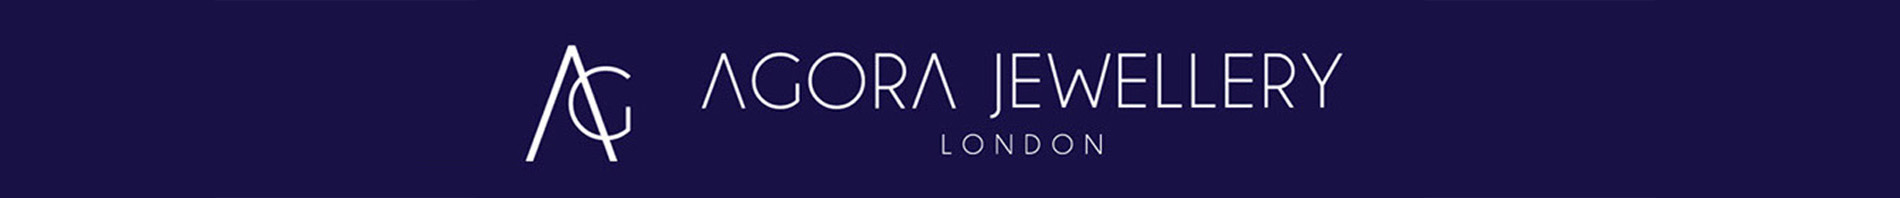 Agora Jewellery Ltd logo